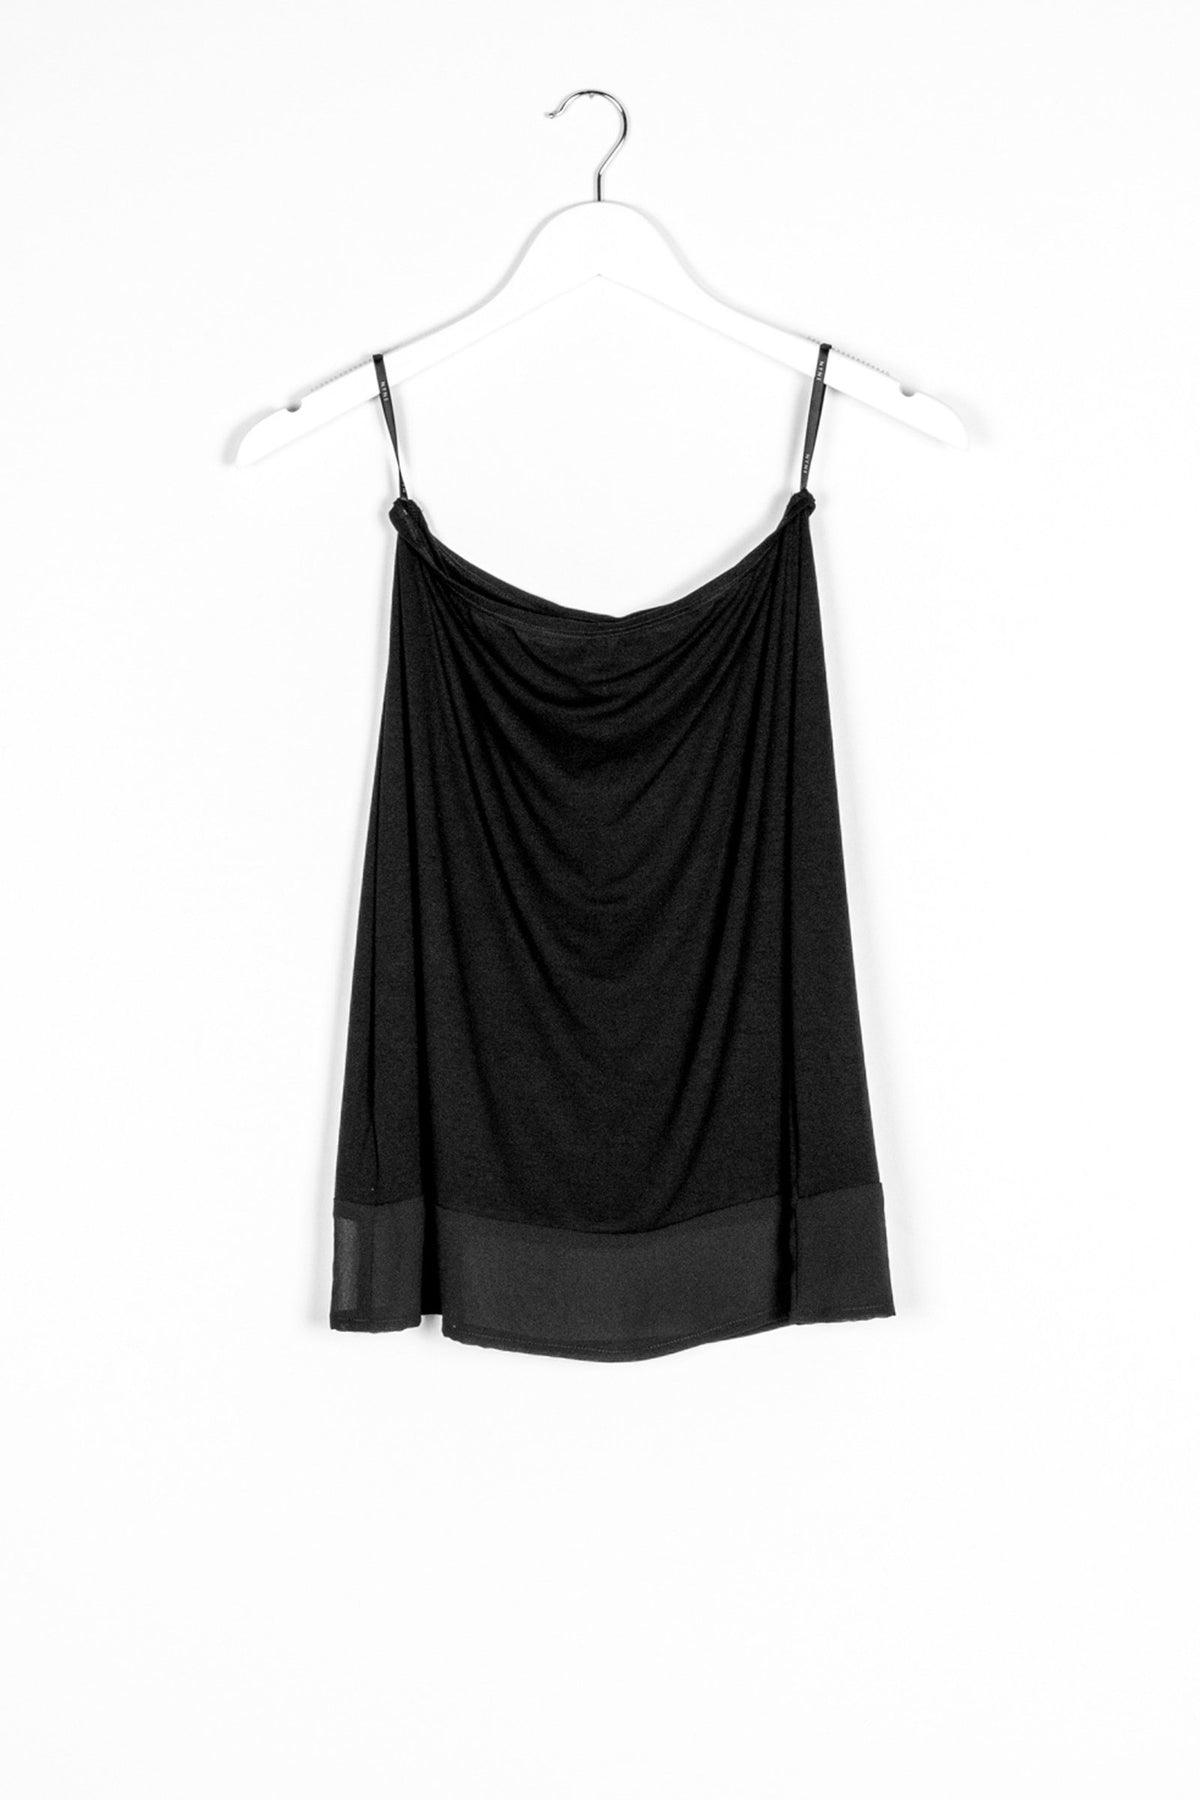 Nyne Block Dress Half Slip Made in New Zealand NZ Designer Clothing Stockists Auckland Parnell